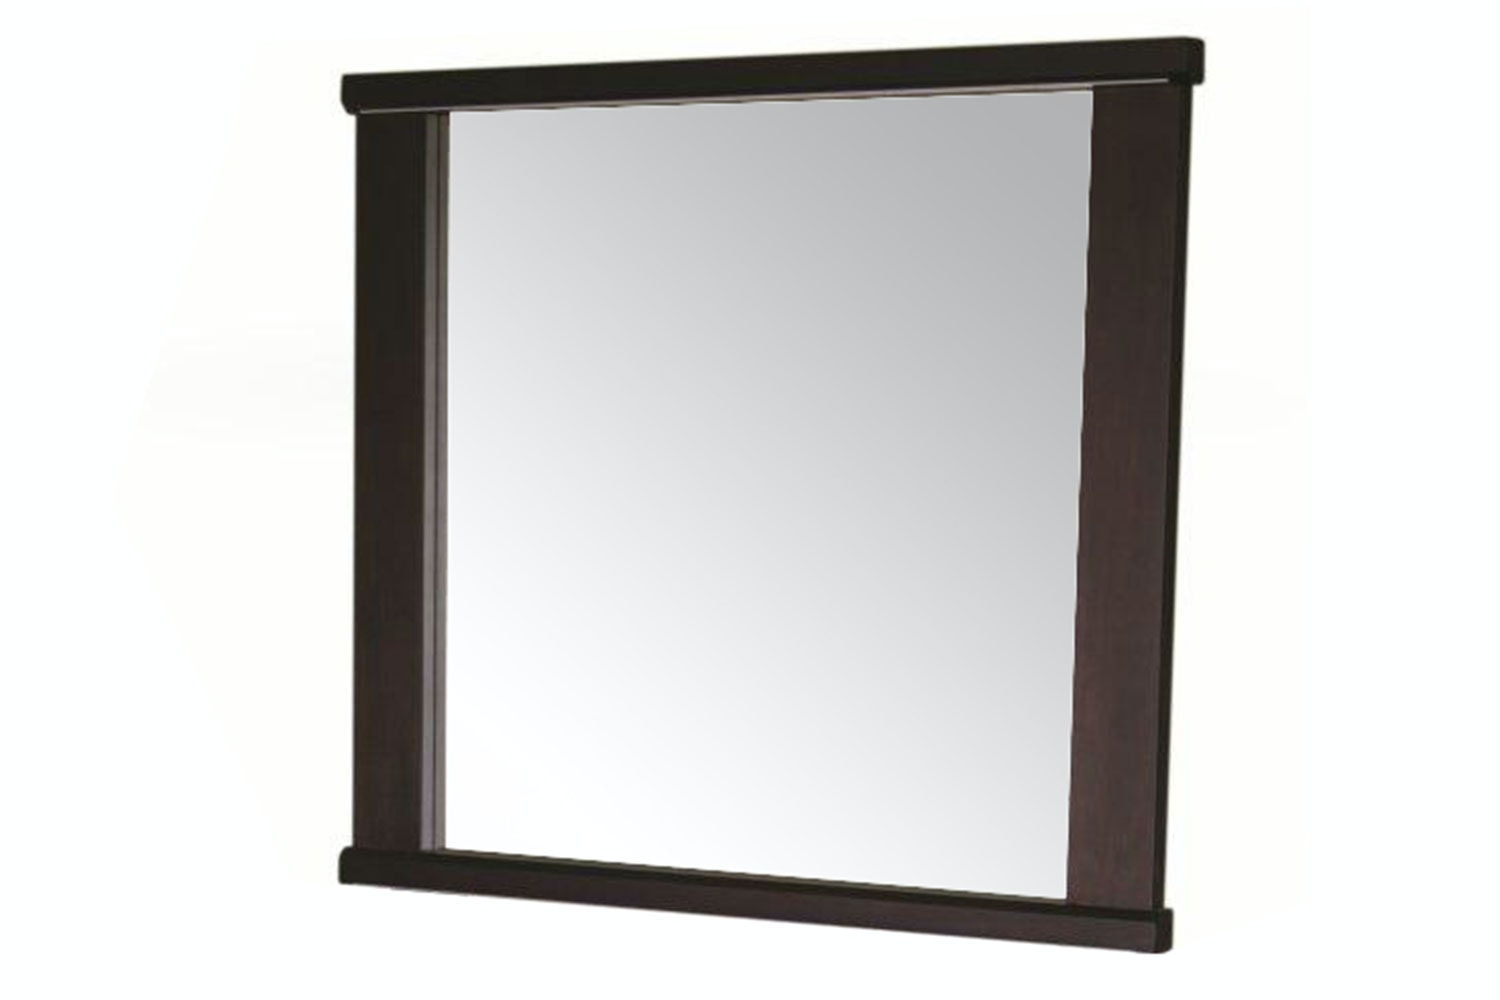 Chicago Wall Hanging Mirror by Coastwood Furniture